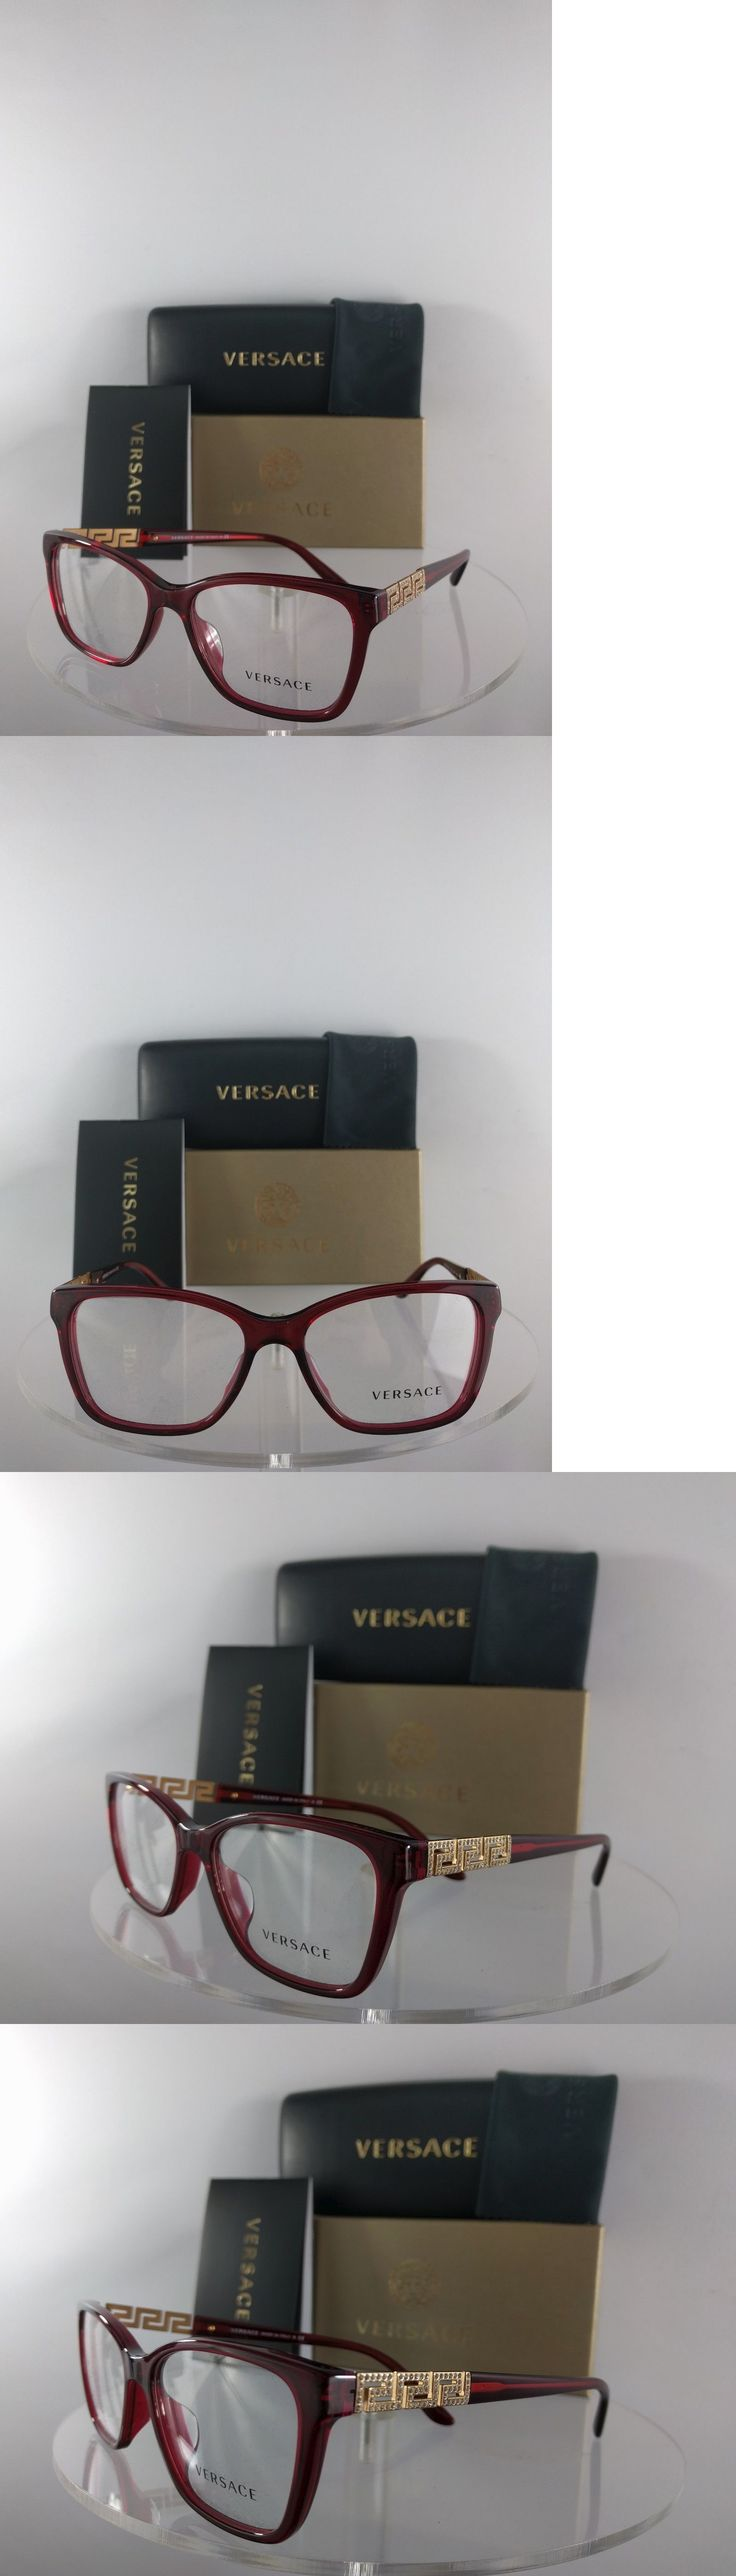 Eyeglass Frames: Brand New Authentic Versace Eyeglasses Mod. 3192-B 388 54Mm Frame BUY IT NOW ONLY: $94.99